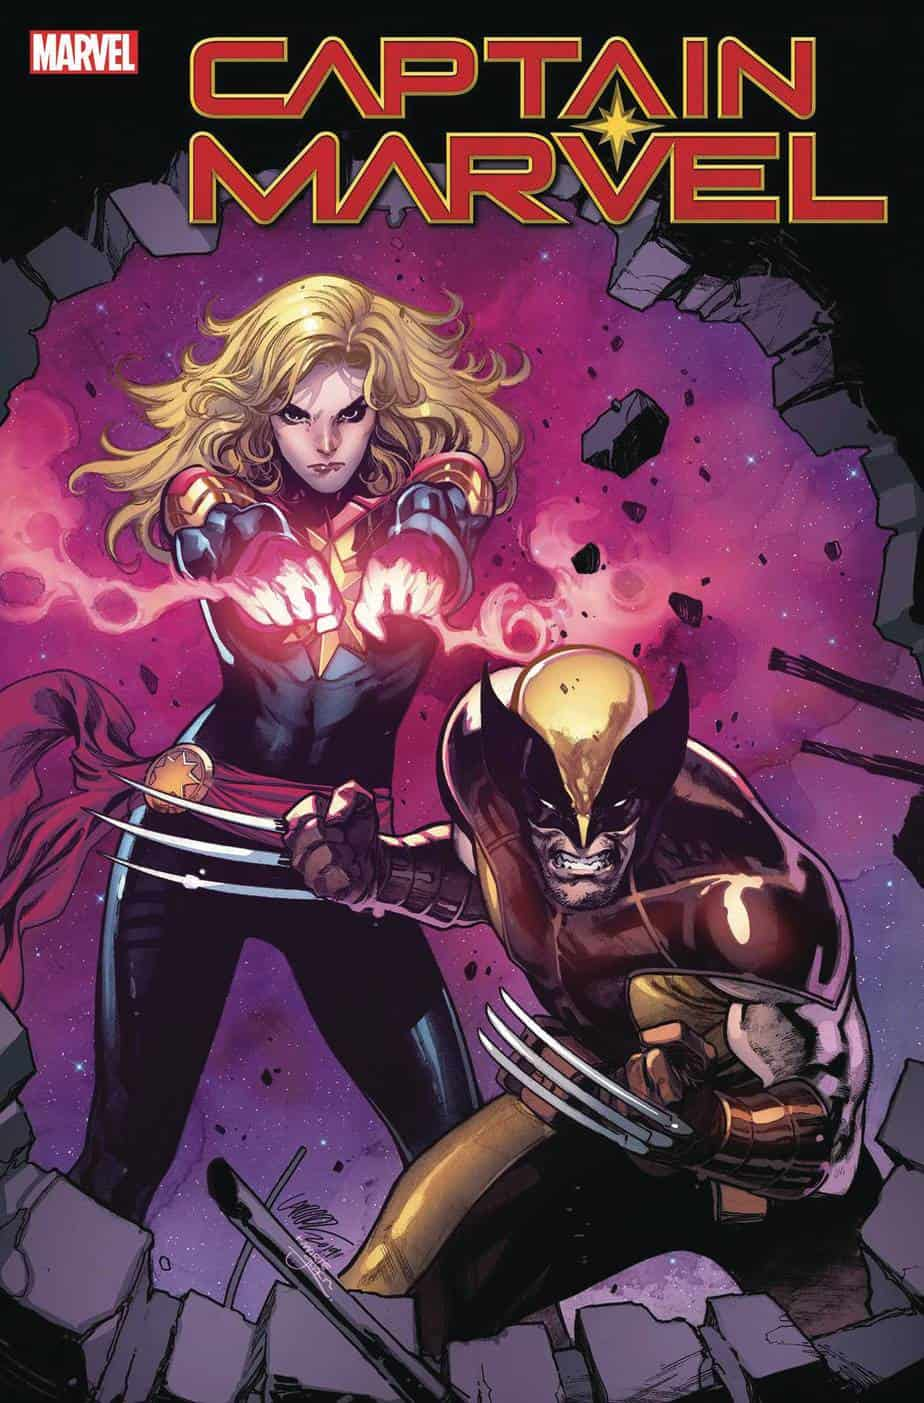 CAPTAIN MARVEL #17 - Cover A